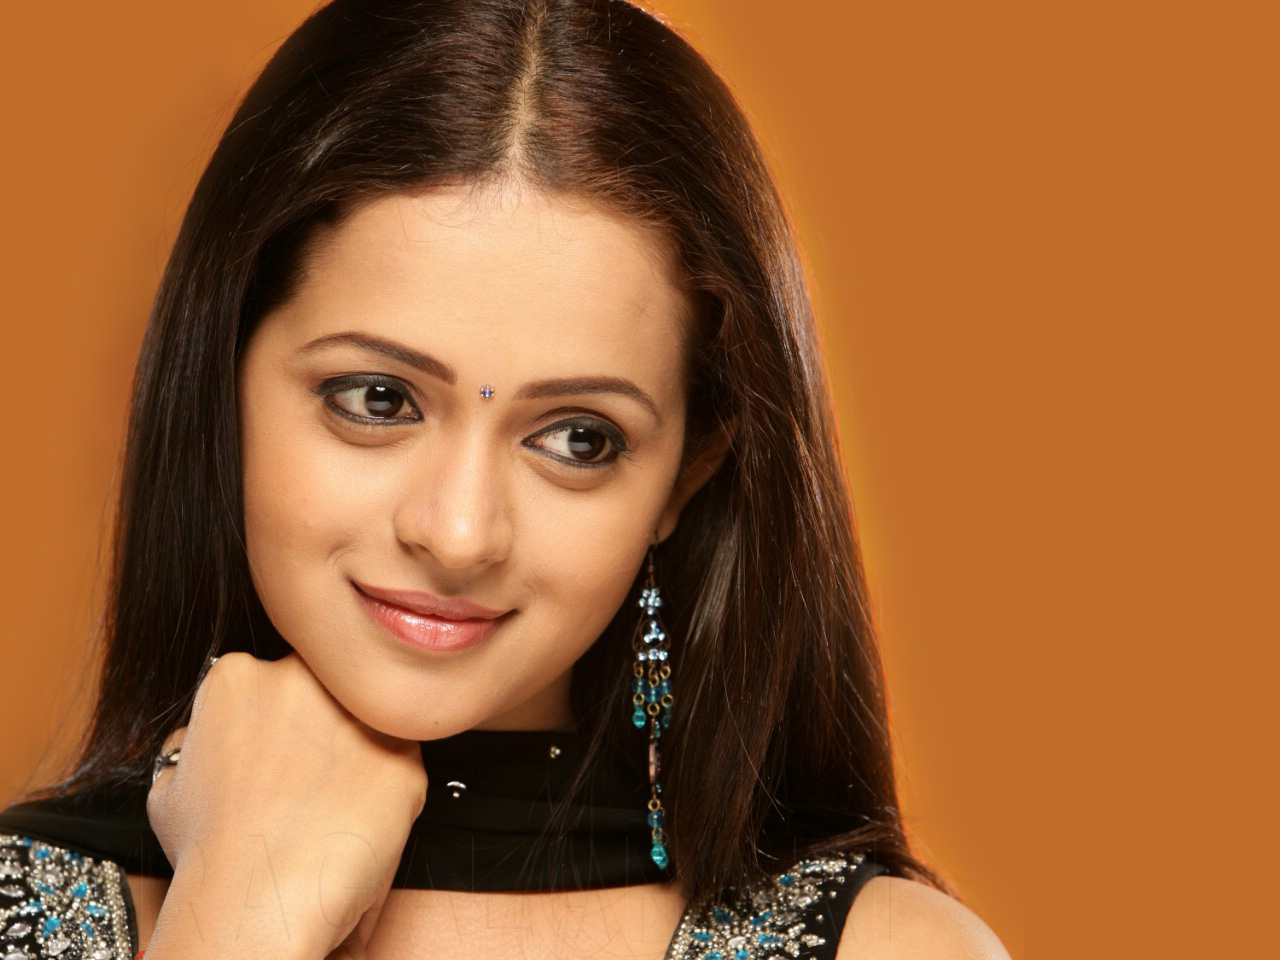 Hd pictures of kollywood actresses - Indian beautiful models hd wallpapers ...